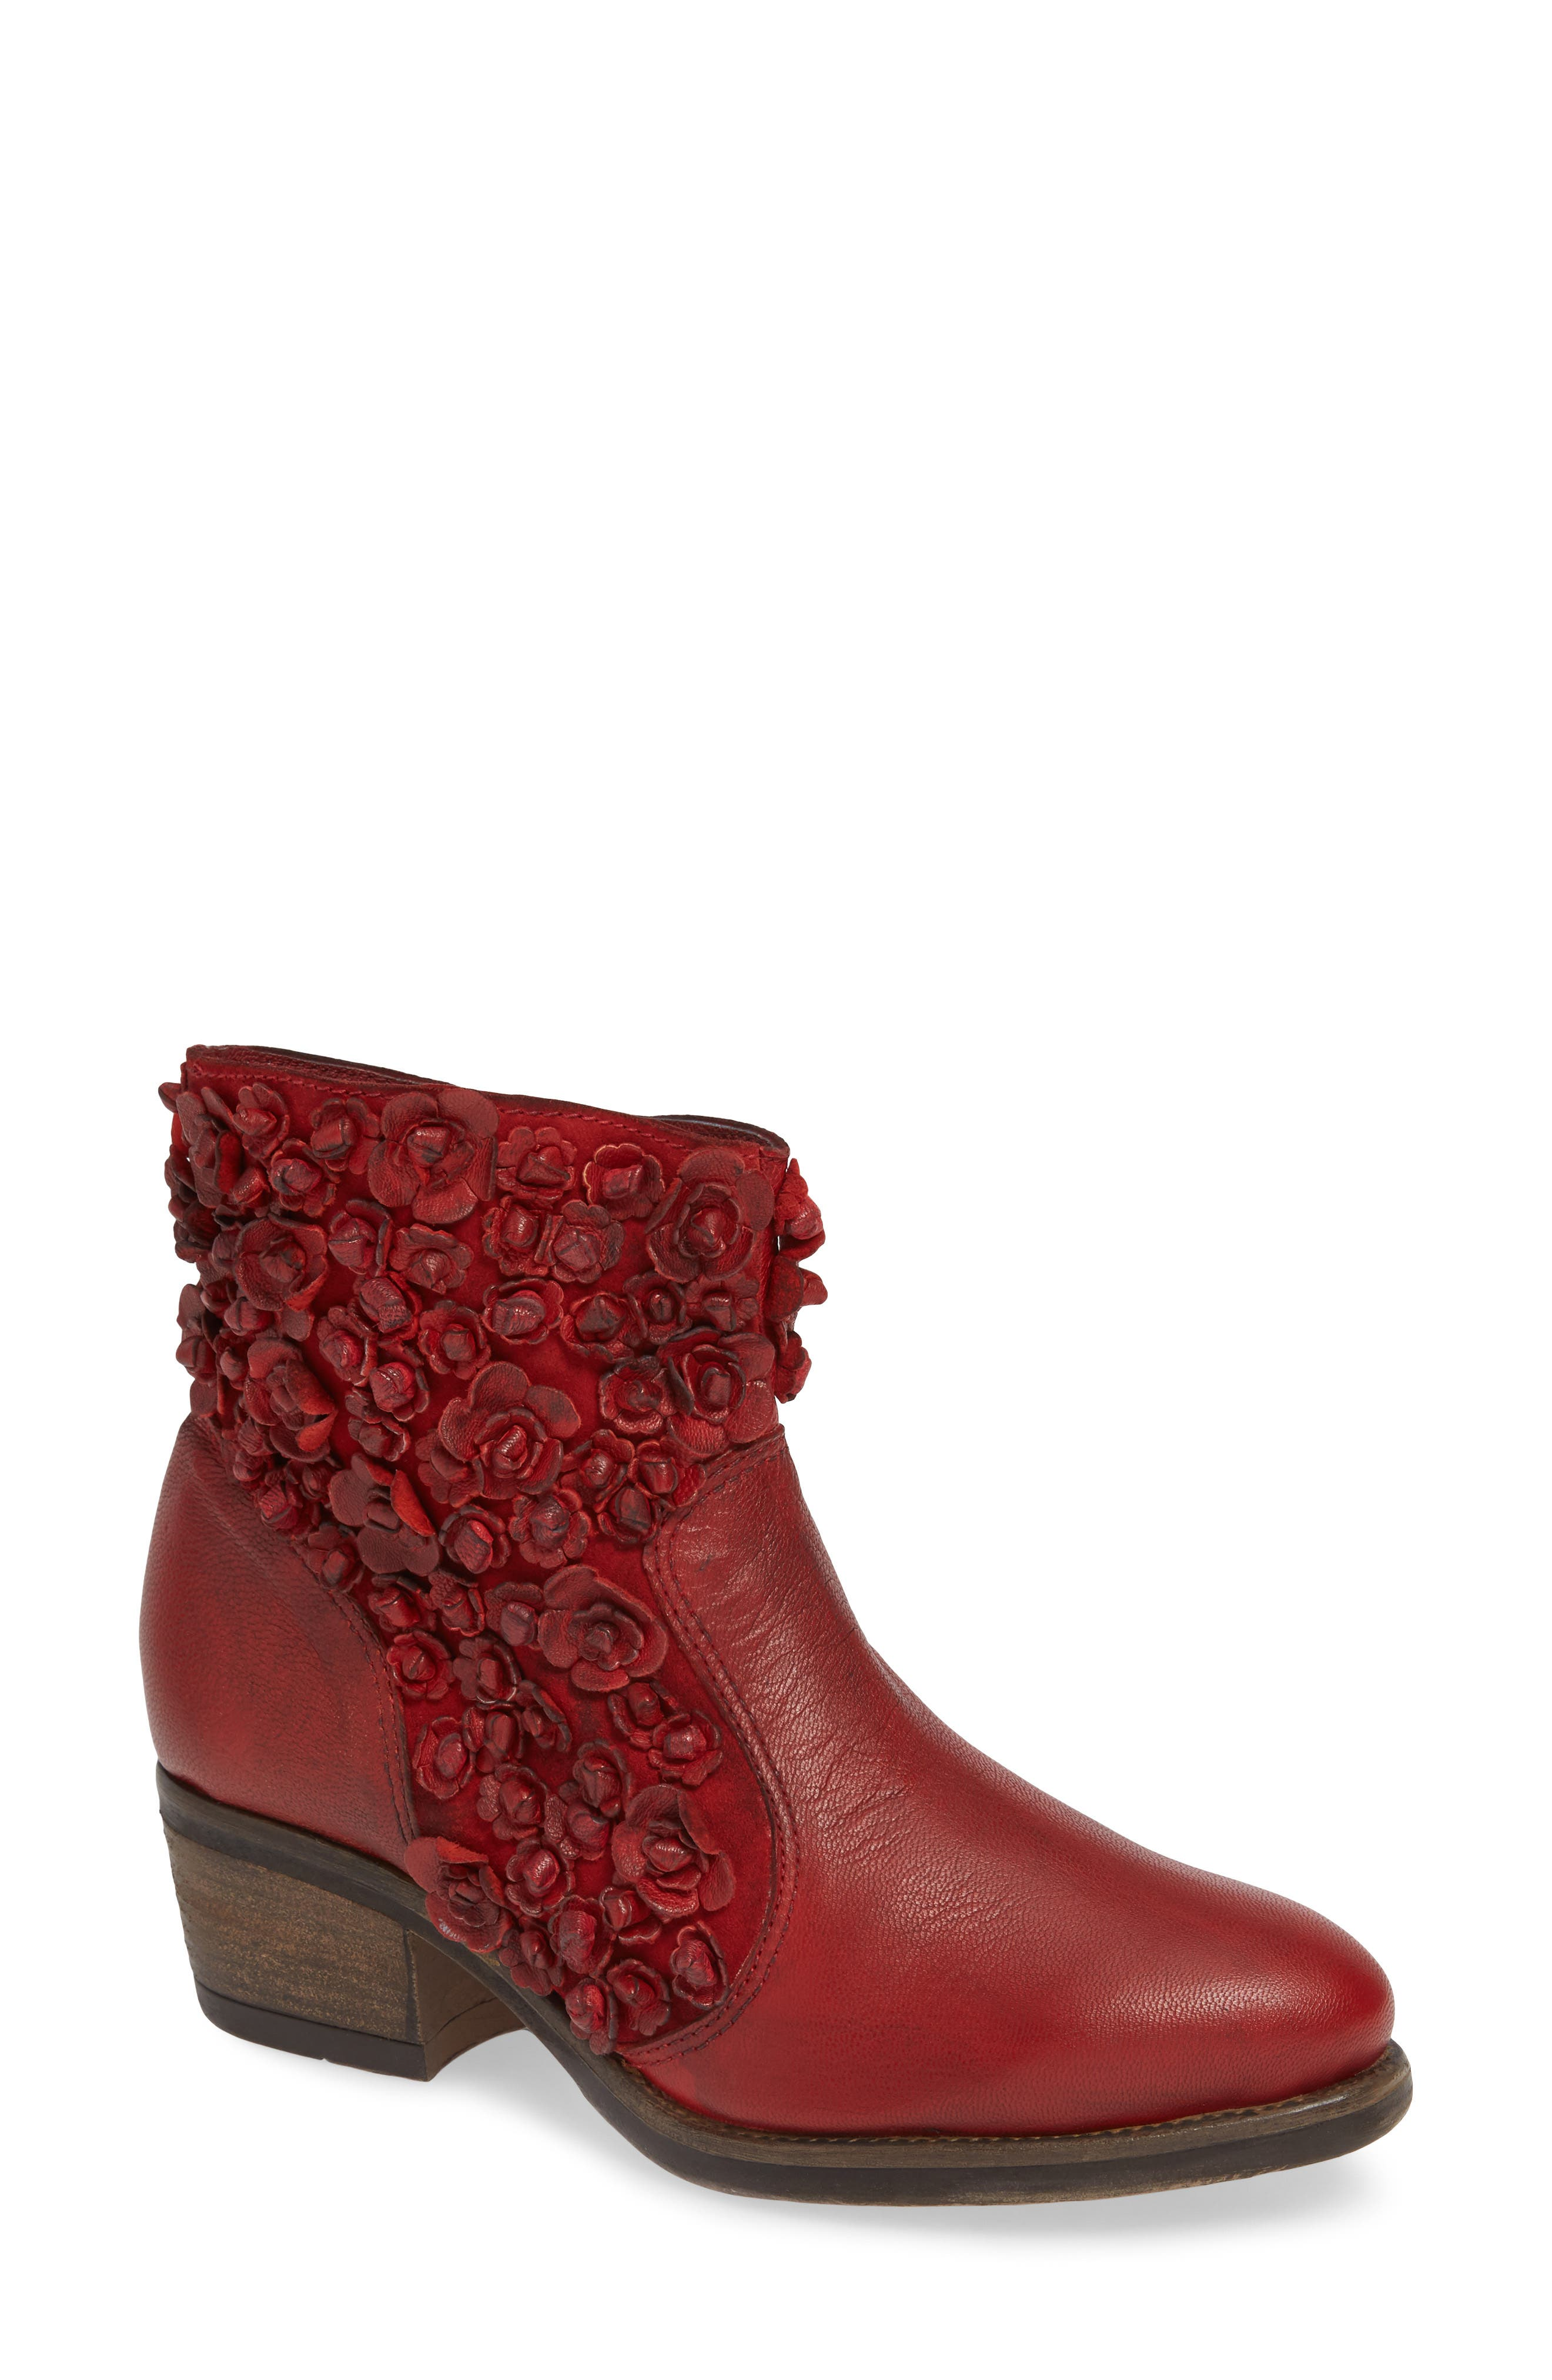 Sheridan Mia Sapphire Bootie, Red